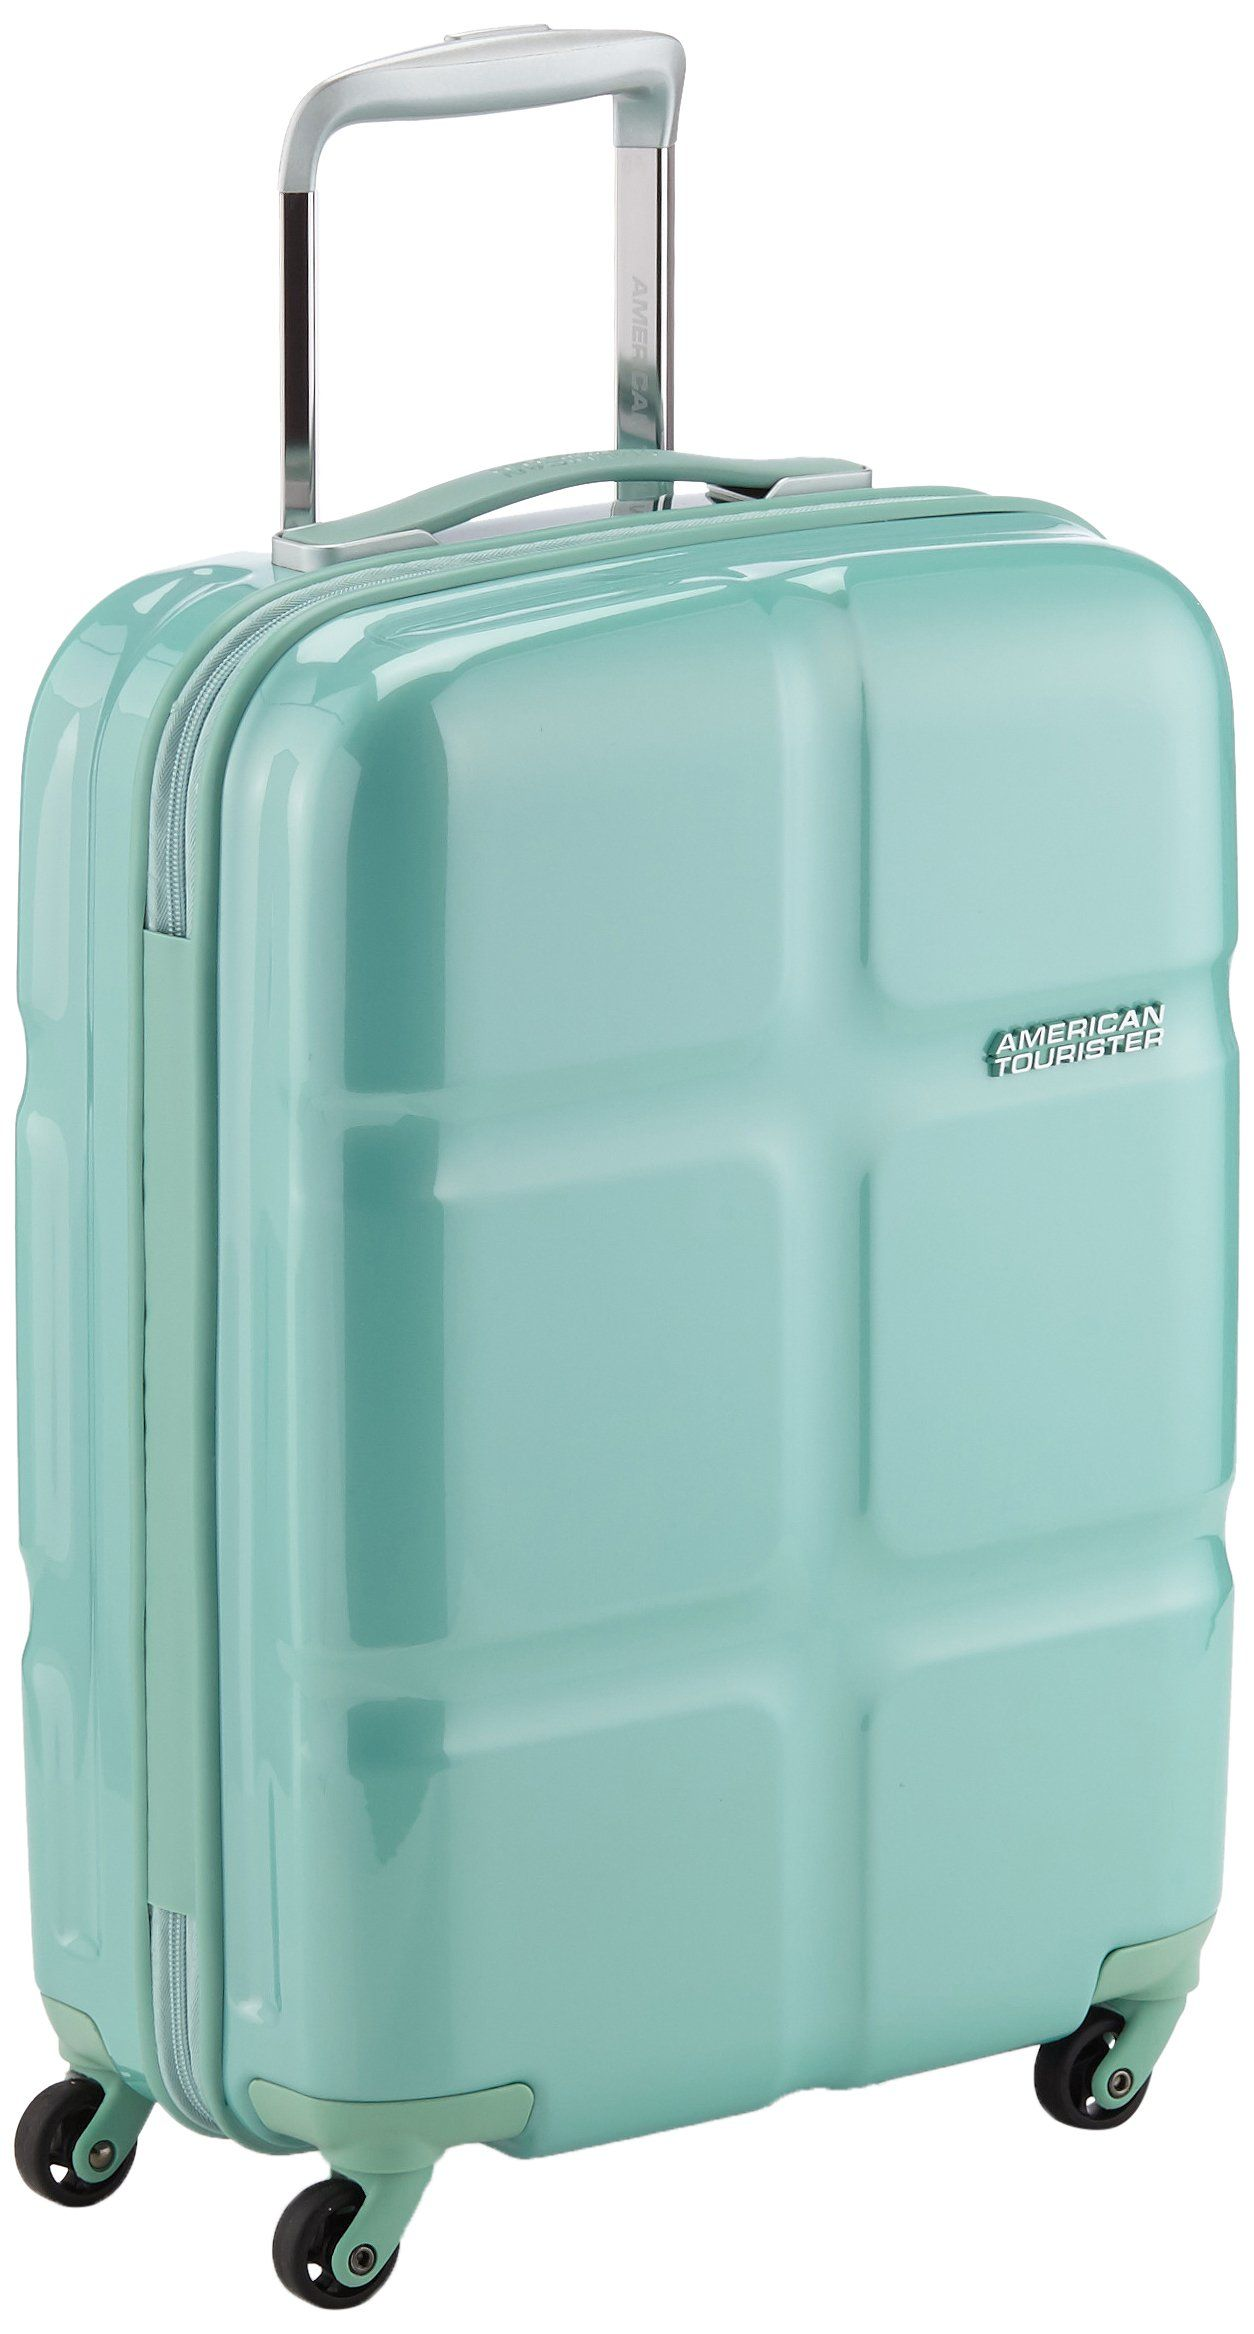 1ca9770e5 American Tourister Suitcase, 55 cm, 30 Liters, Mint Green: Amazon.co.uk:  Luggage